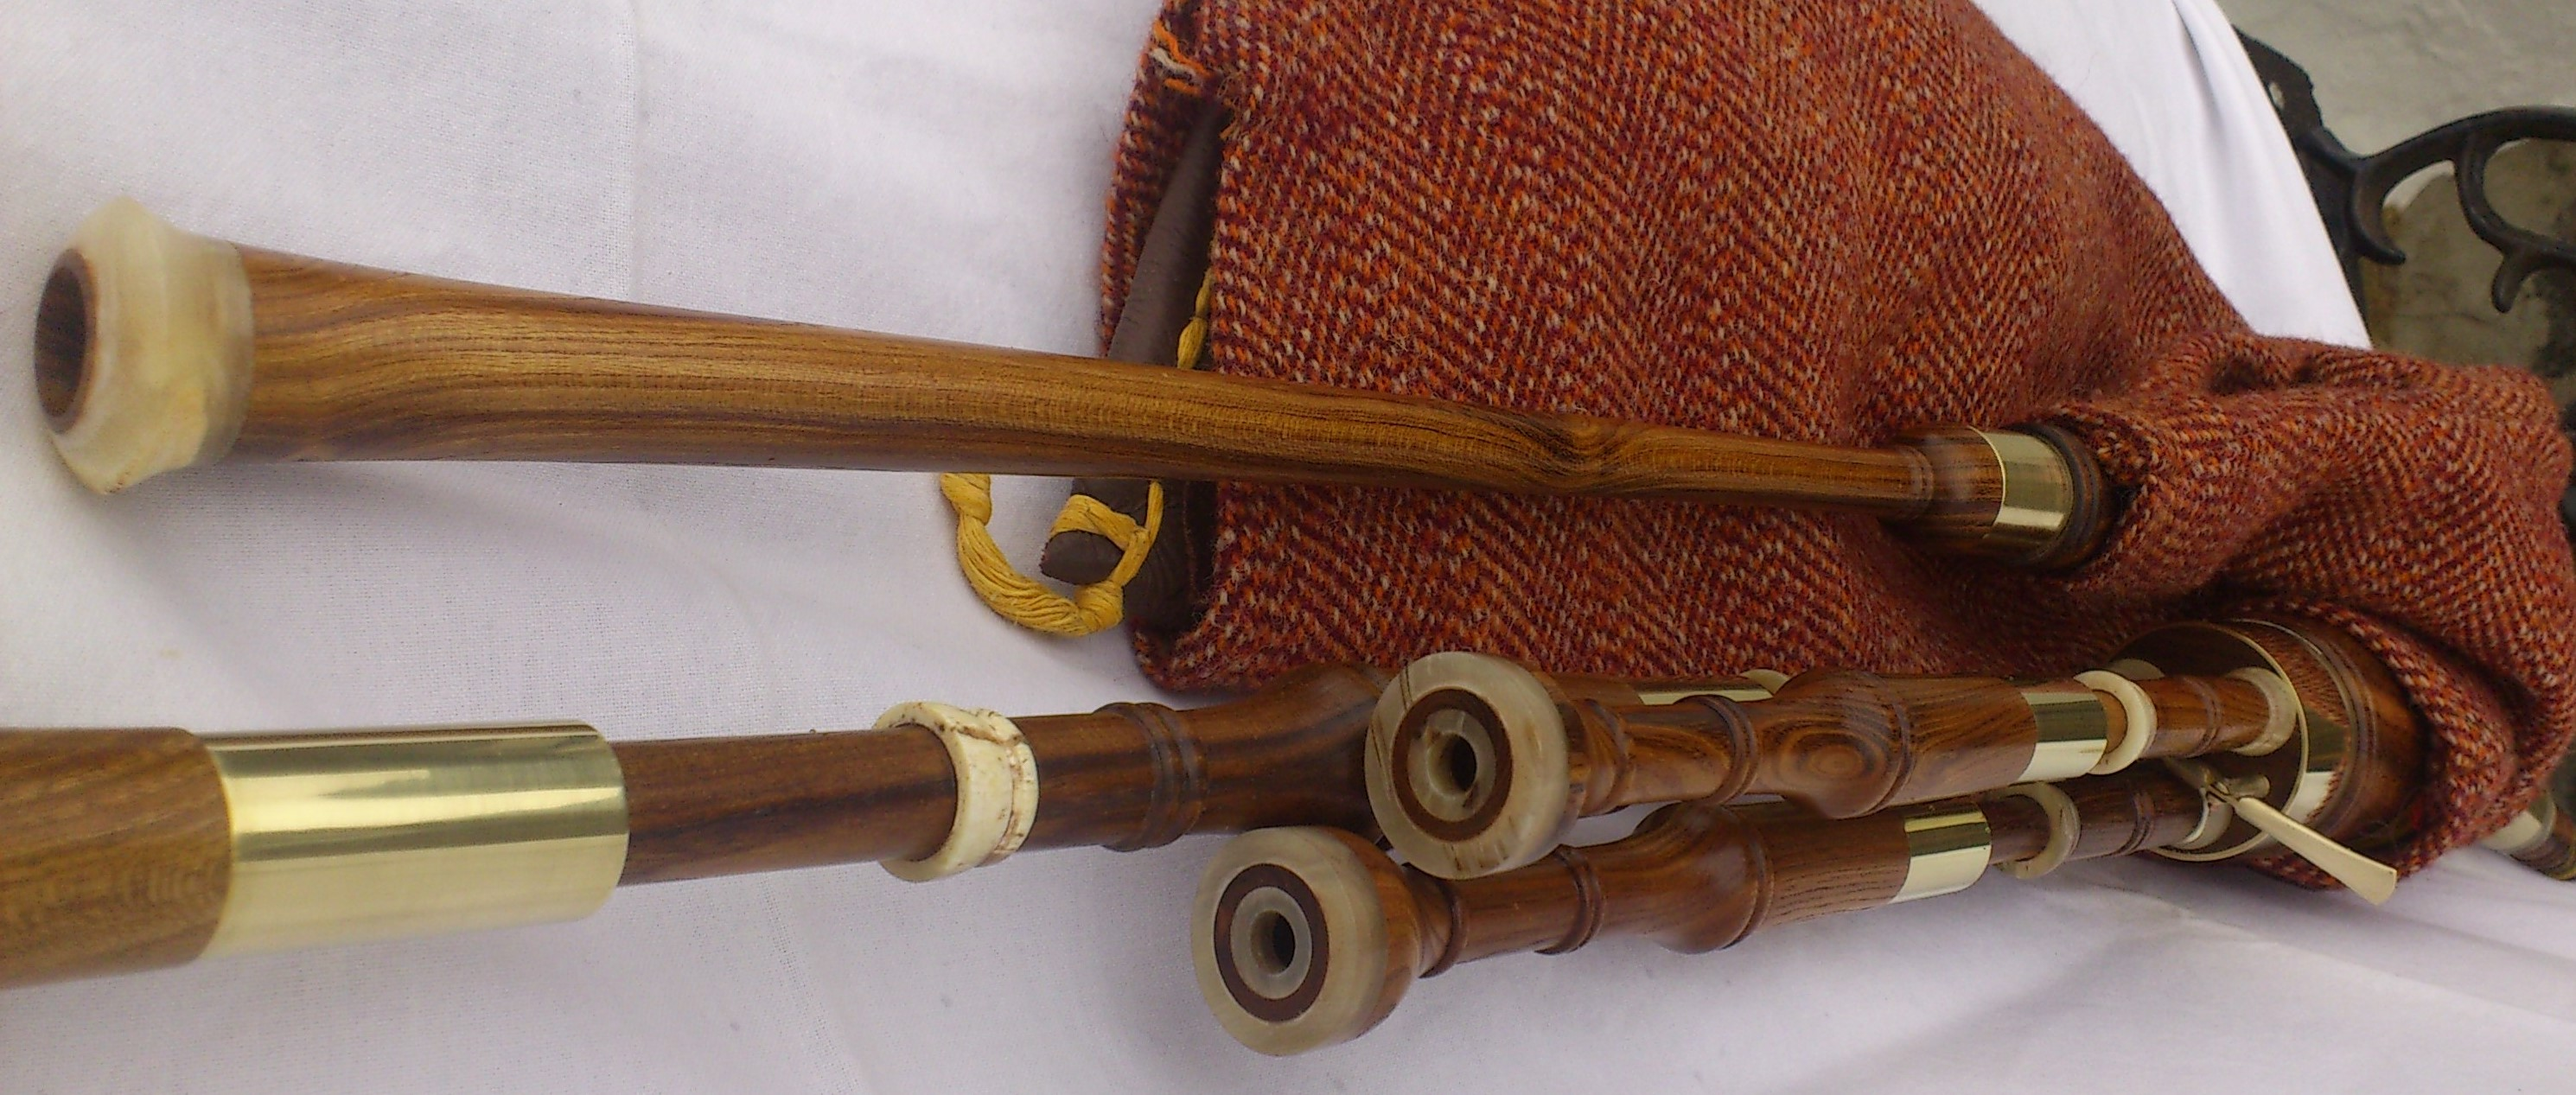 laburnum borderpipes 1